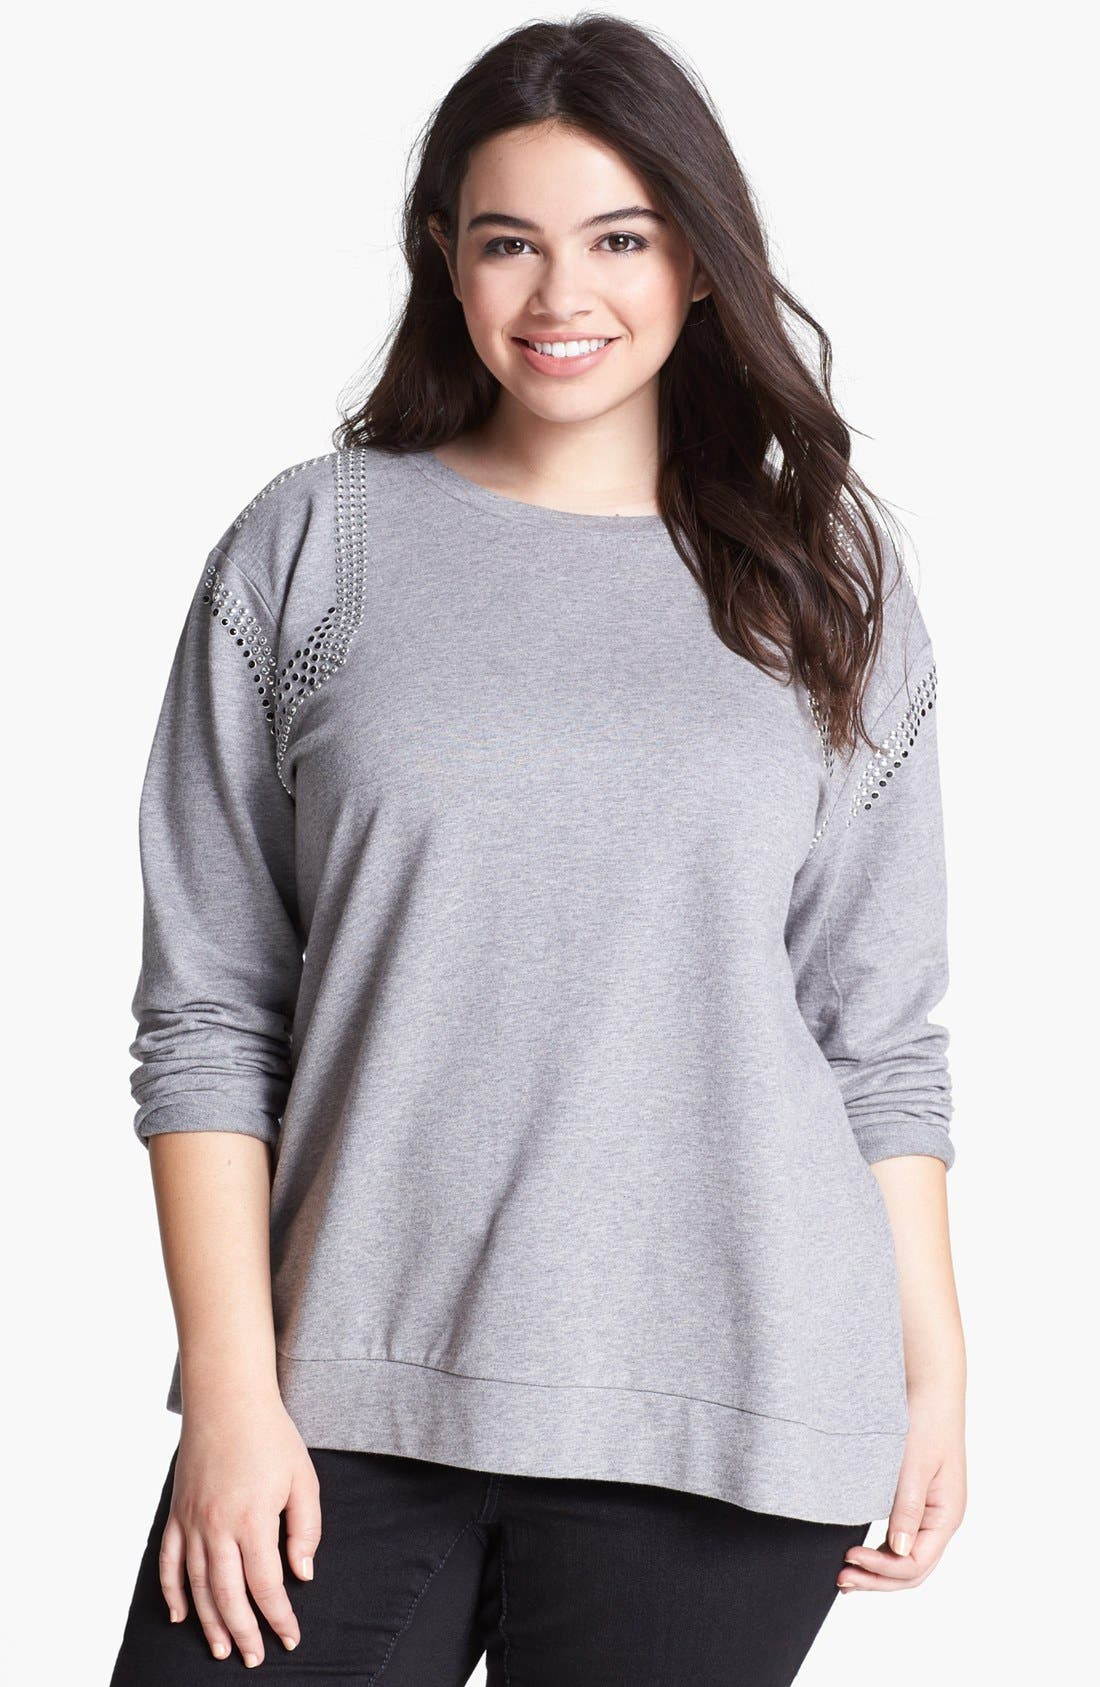 Main Image - Two by Vince Camuto Studded Sweatshirt (Plus Size)